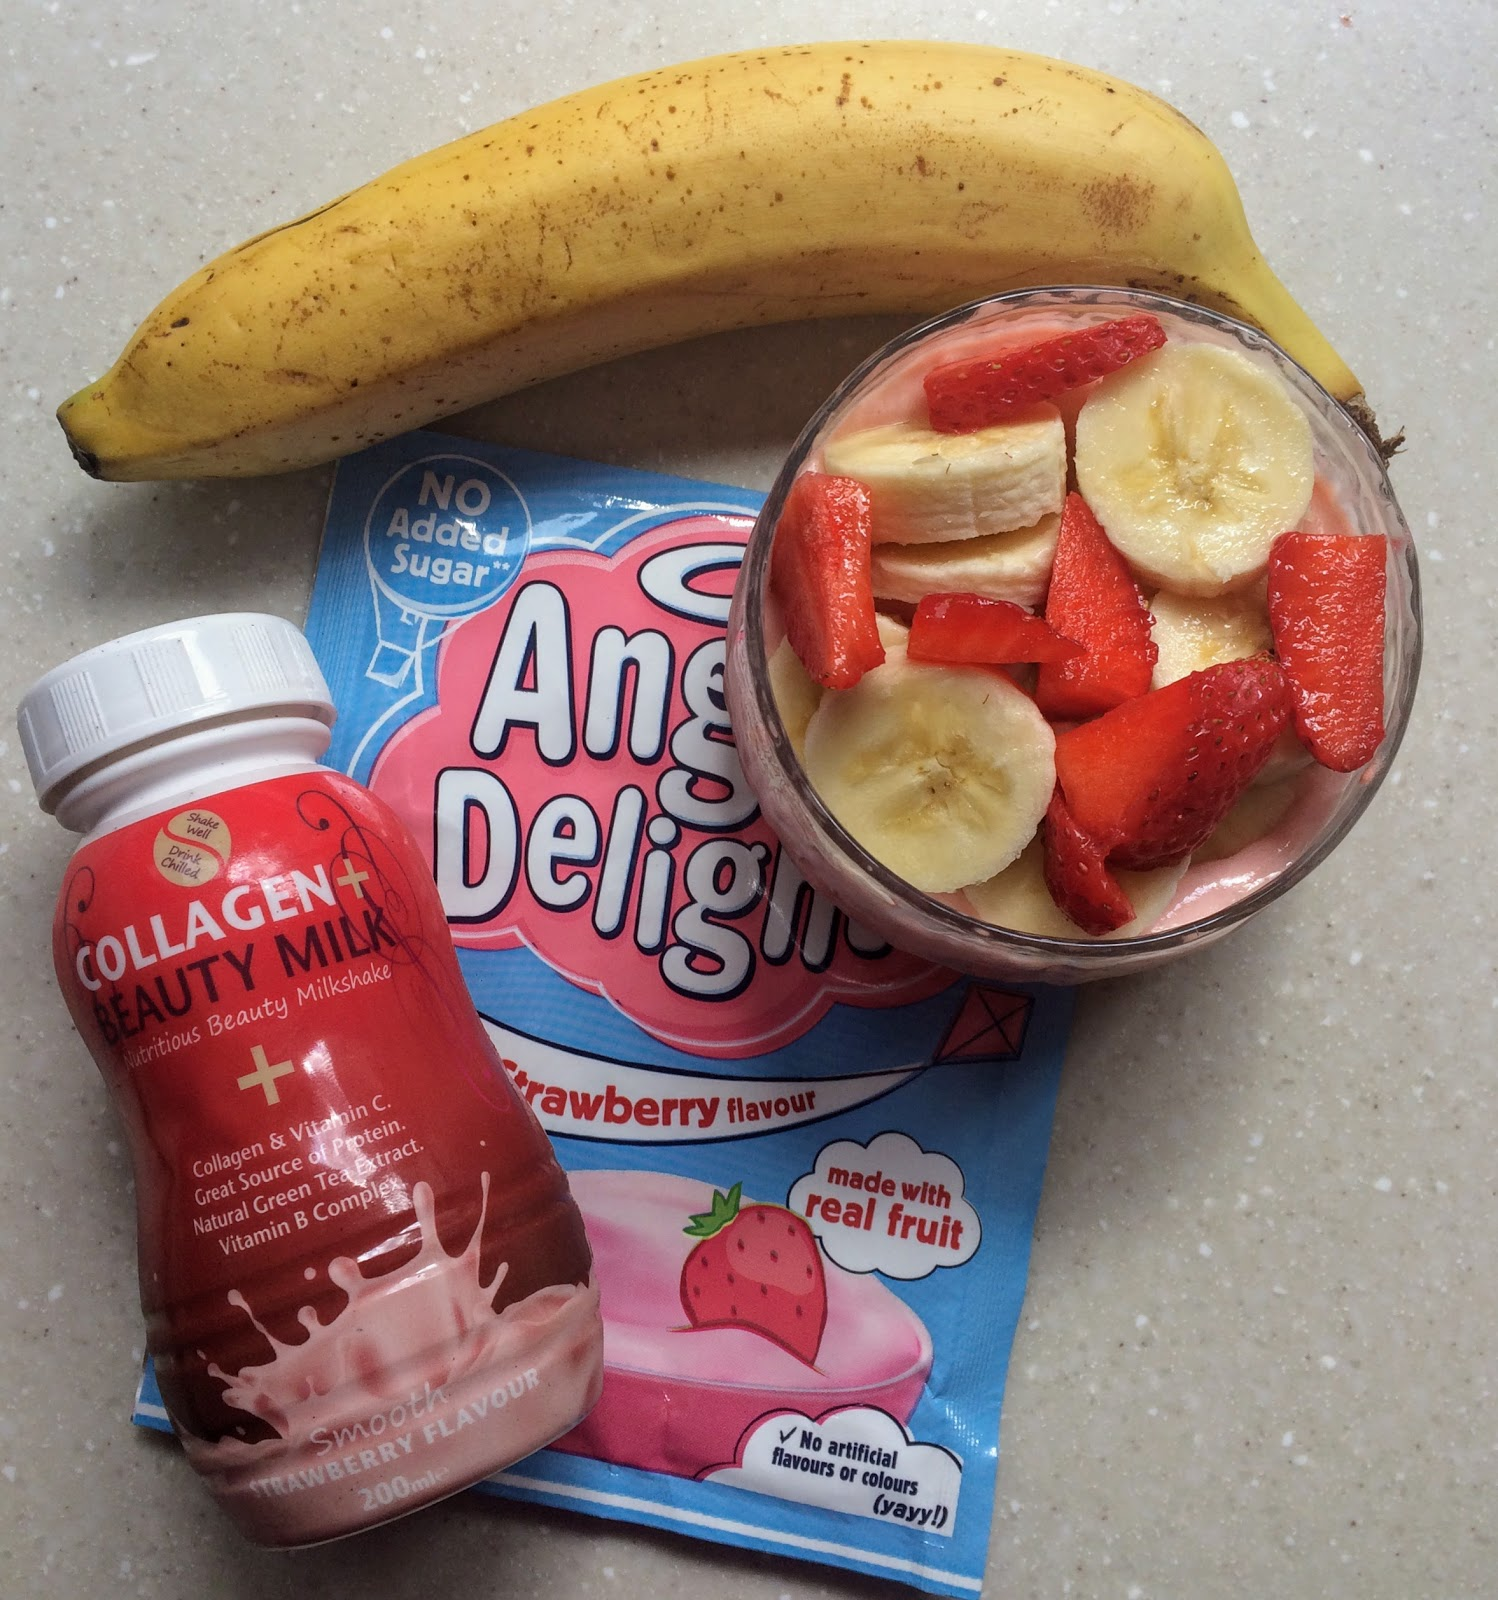 Collagen Beauty Milk and Strawberry sugar free angel delight